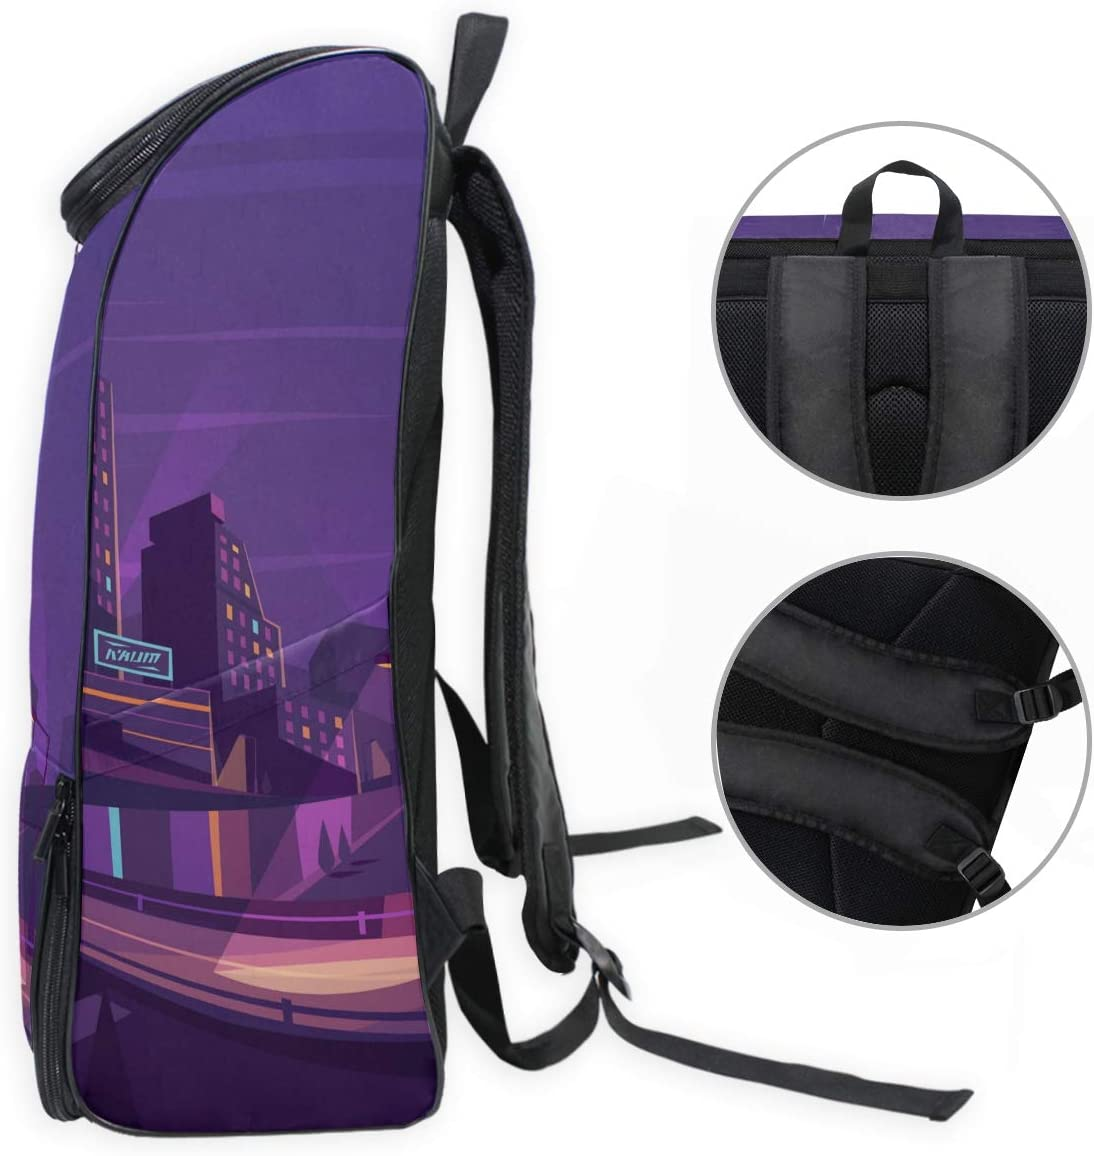 FANTAZIO Travel Laptop Backpack Flourishing City Night Durable College School Computer Bookbag for Outdoor Camping Fits Up to Notebook